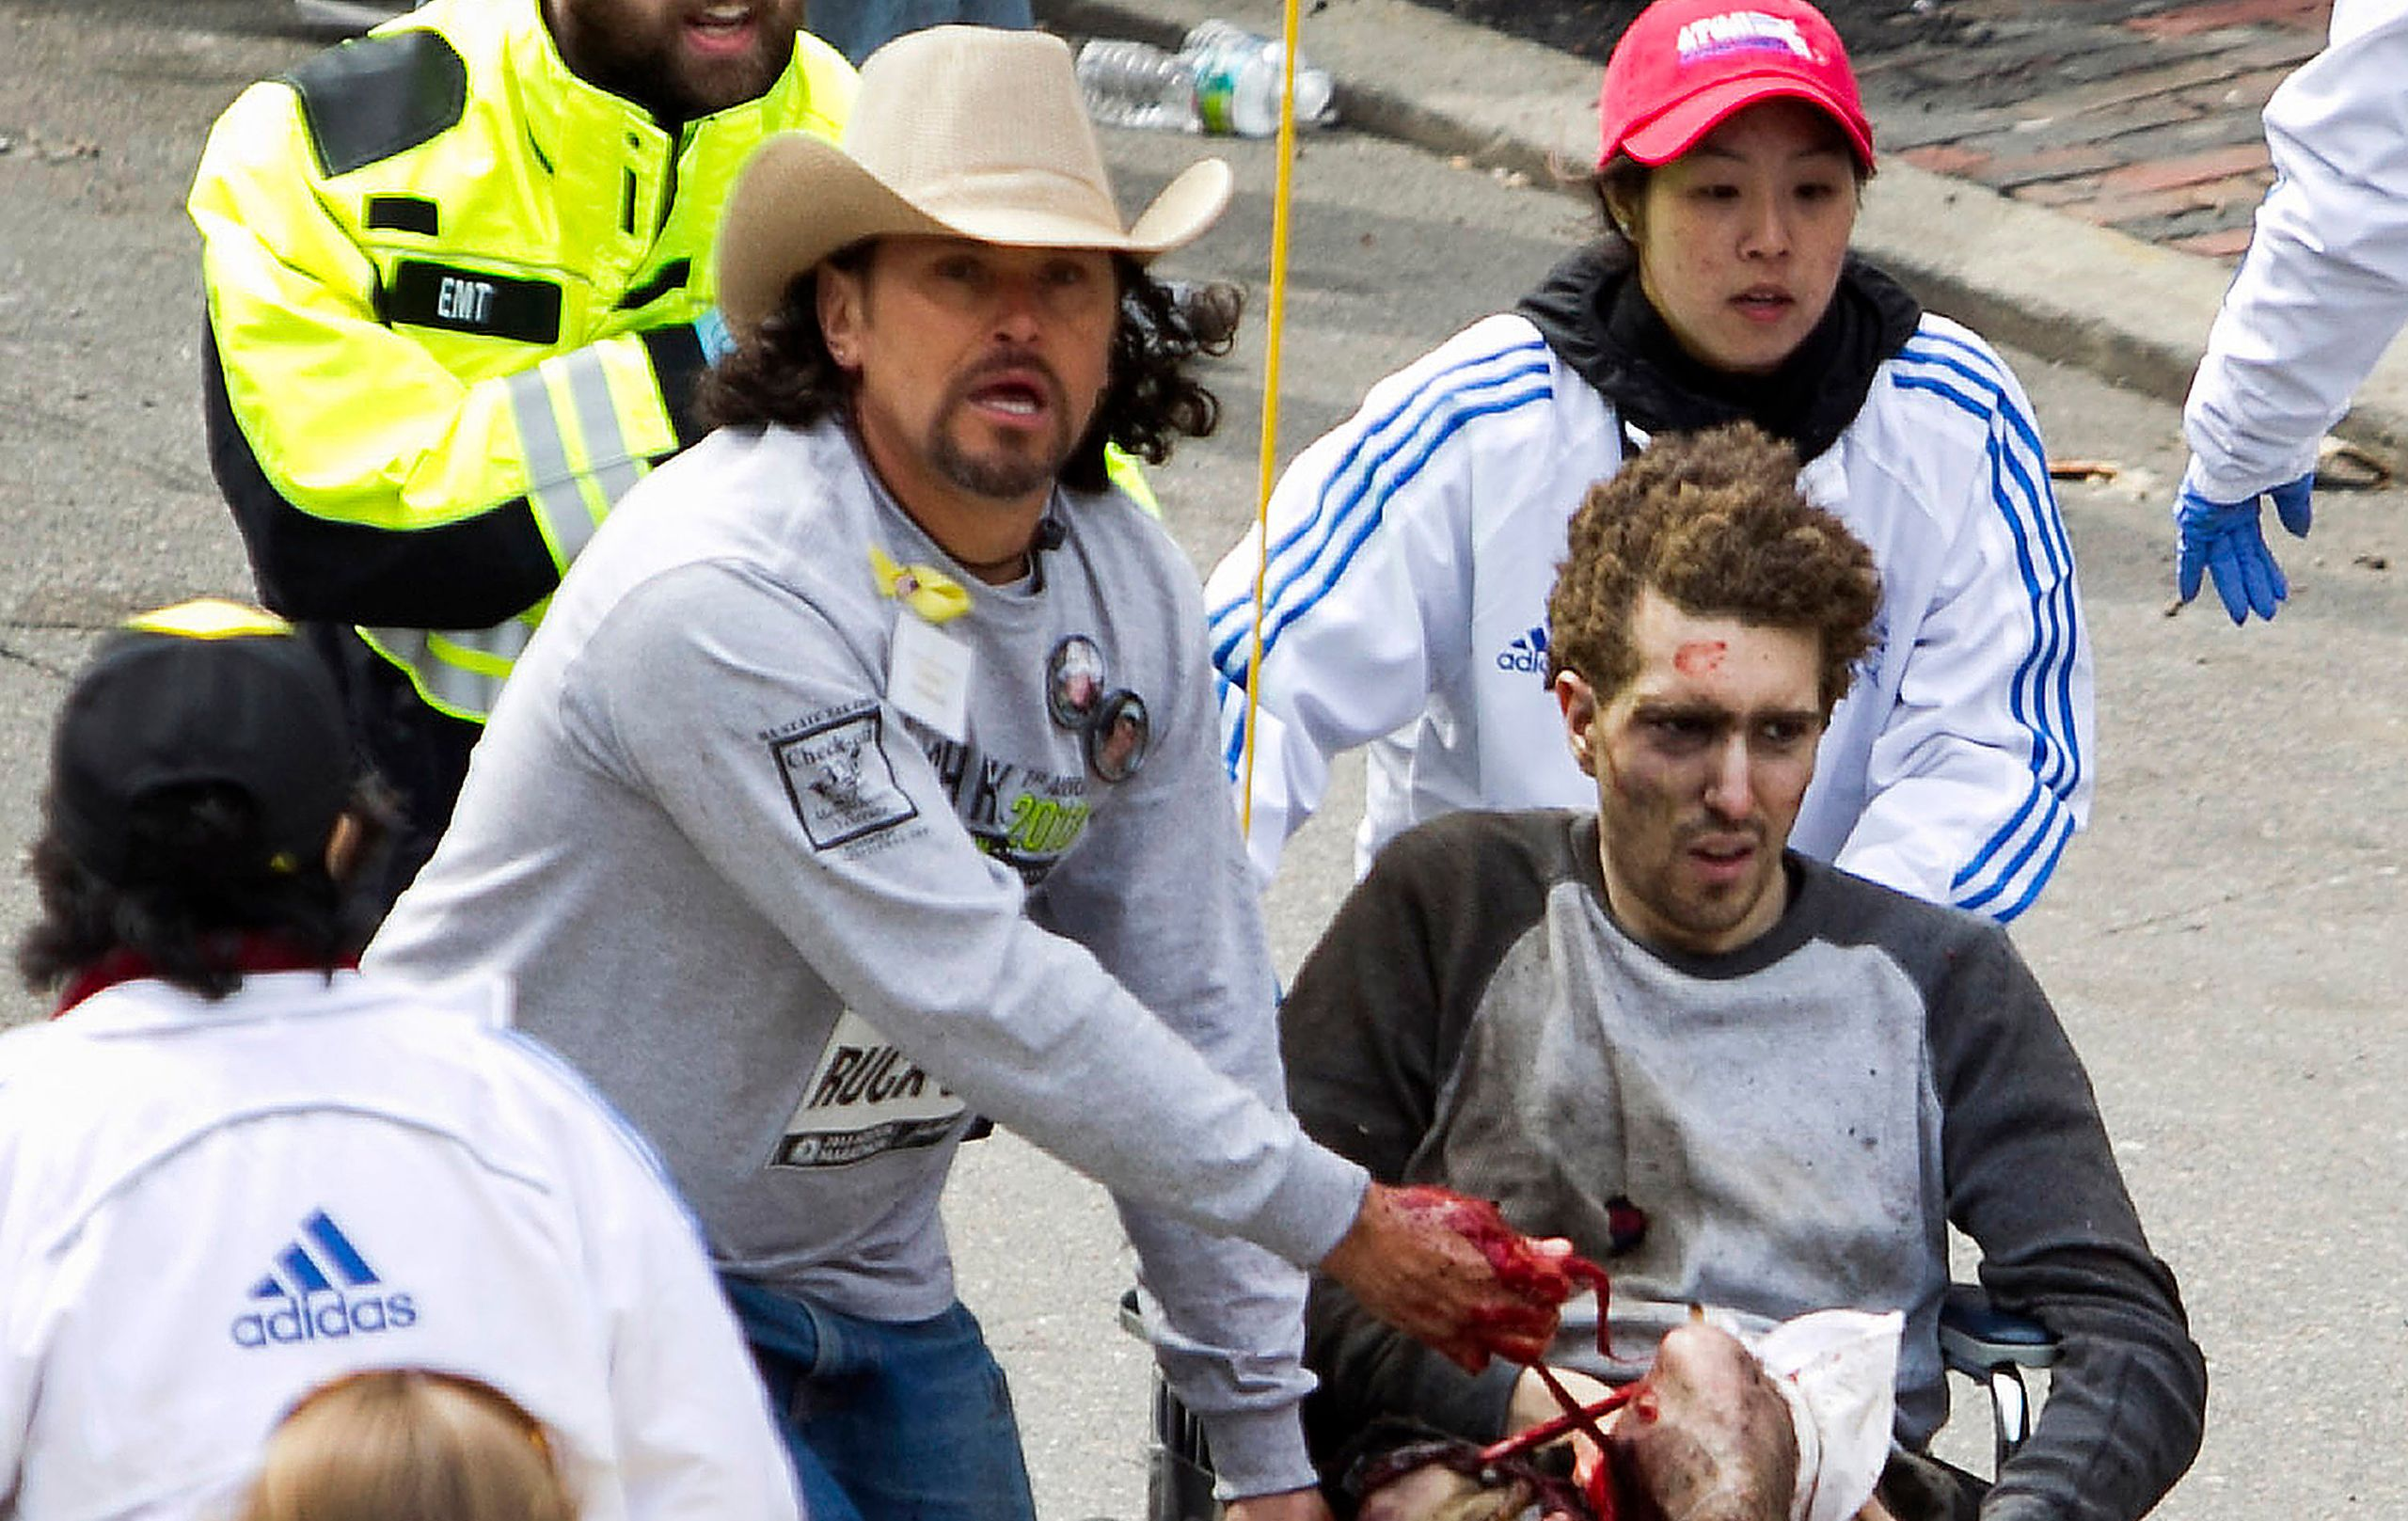 First responders including Carlos Arredondo, in the cowboy hat, tend to Jeff Bauman, who was severely wounded after two explo